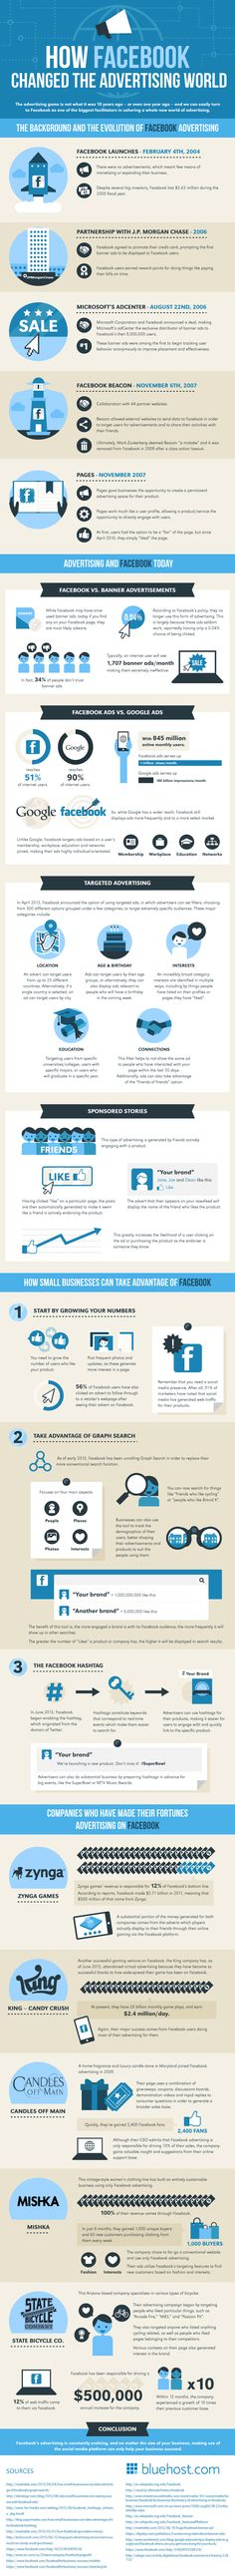 How Facebook Changed the Advertising World - great infographic by BlueHost!